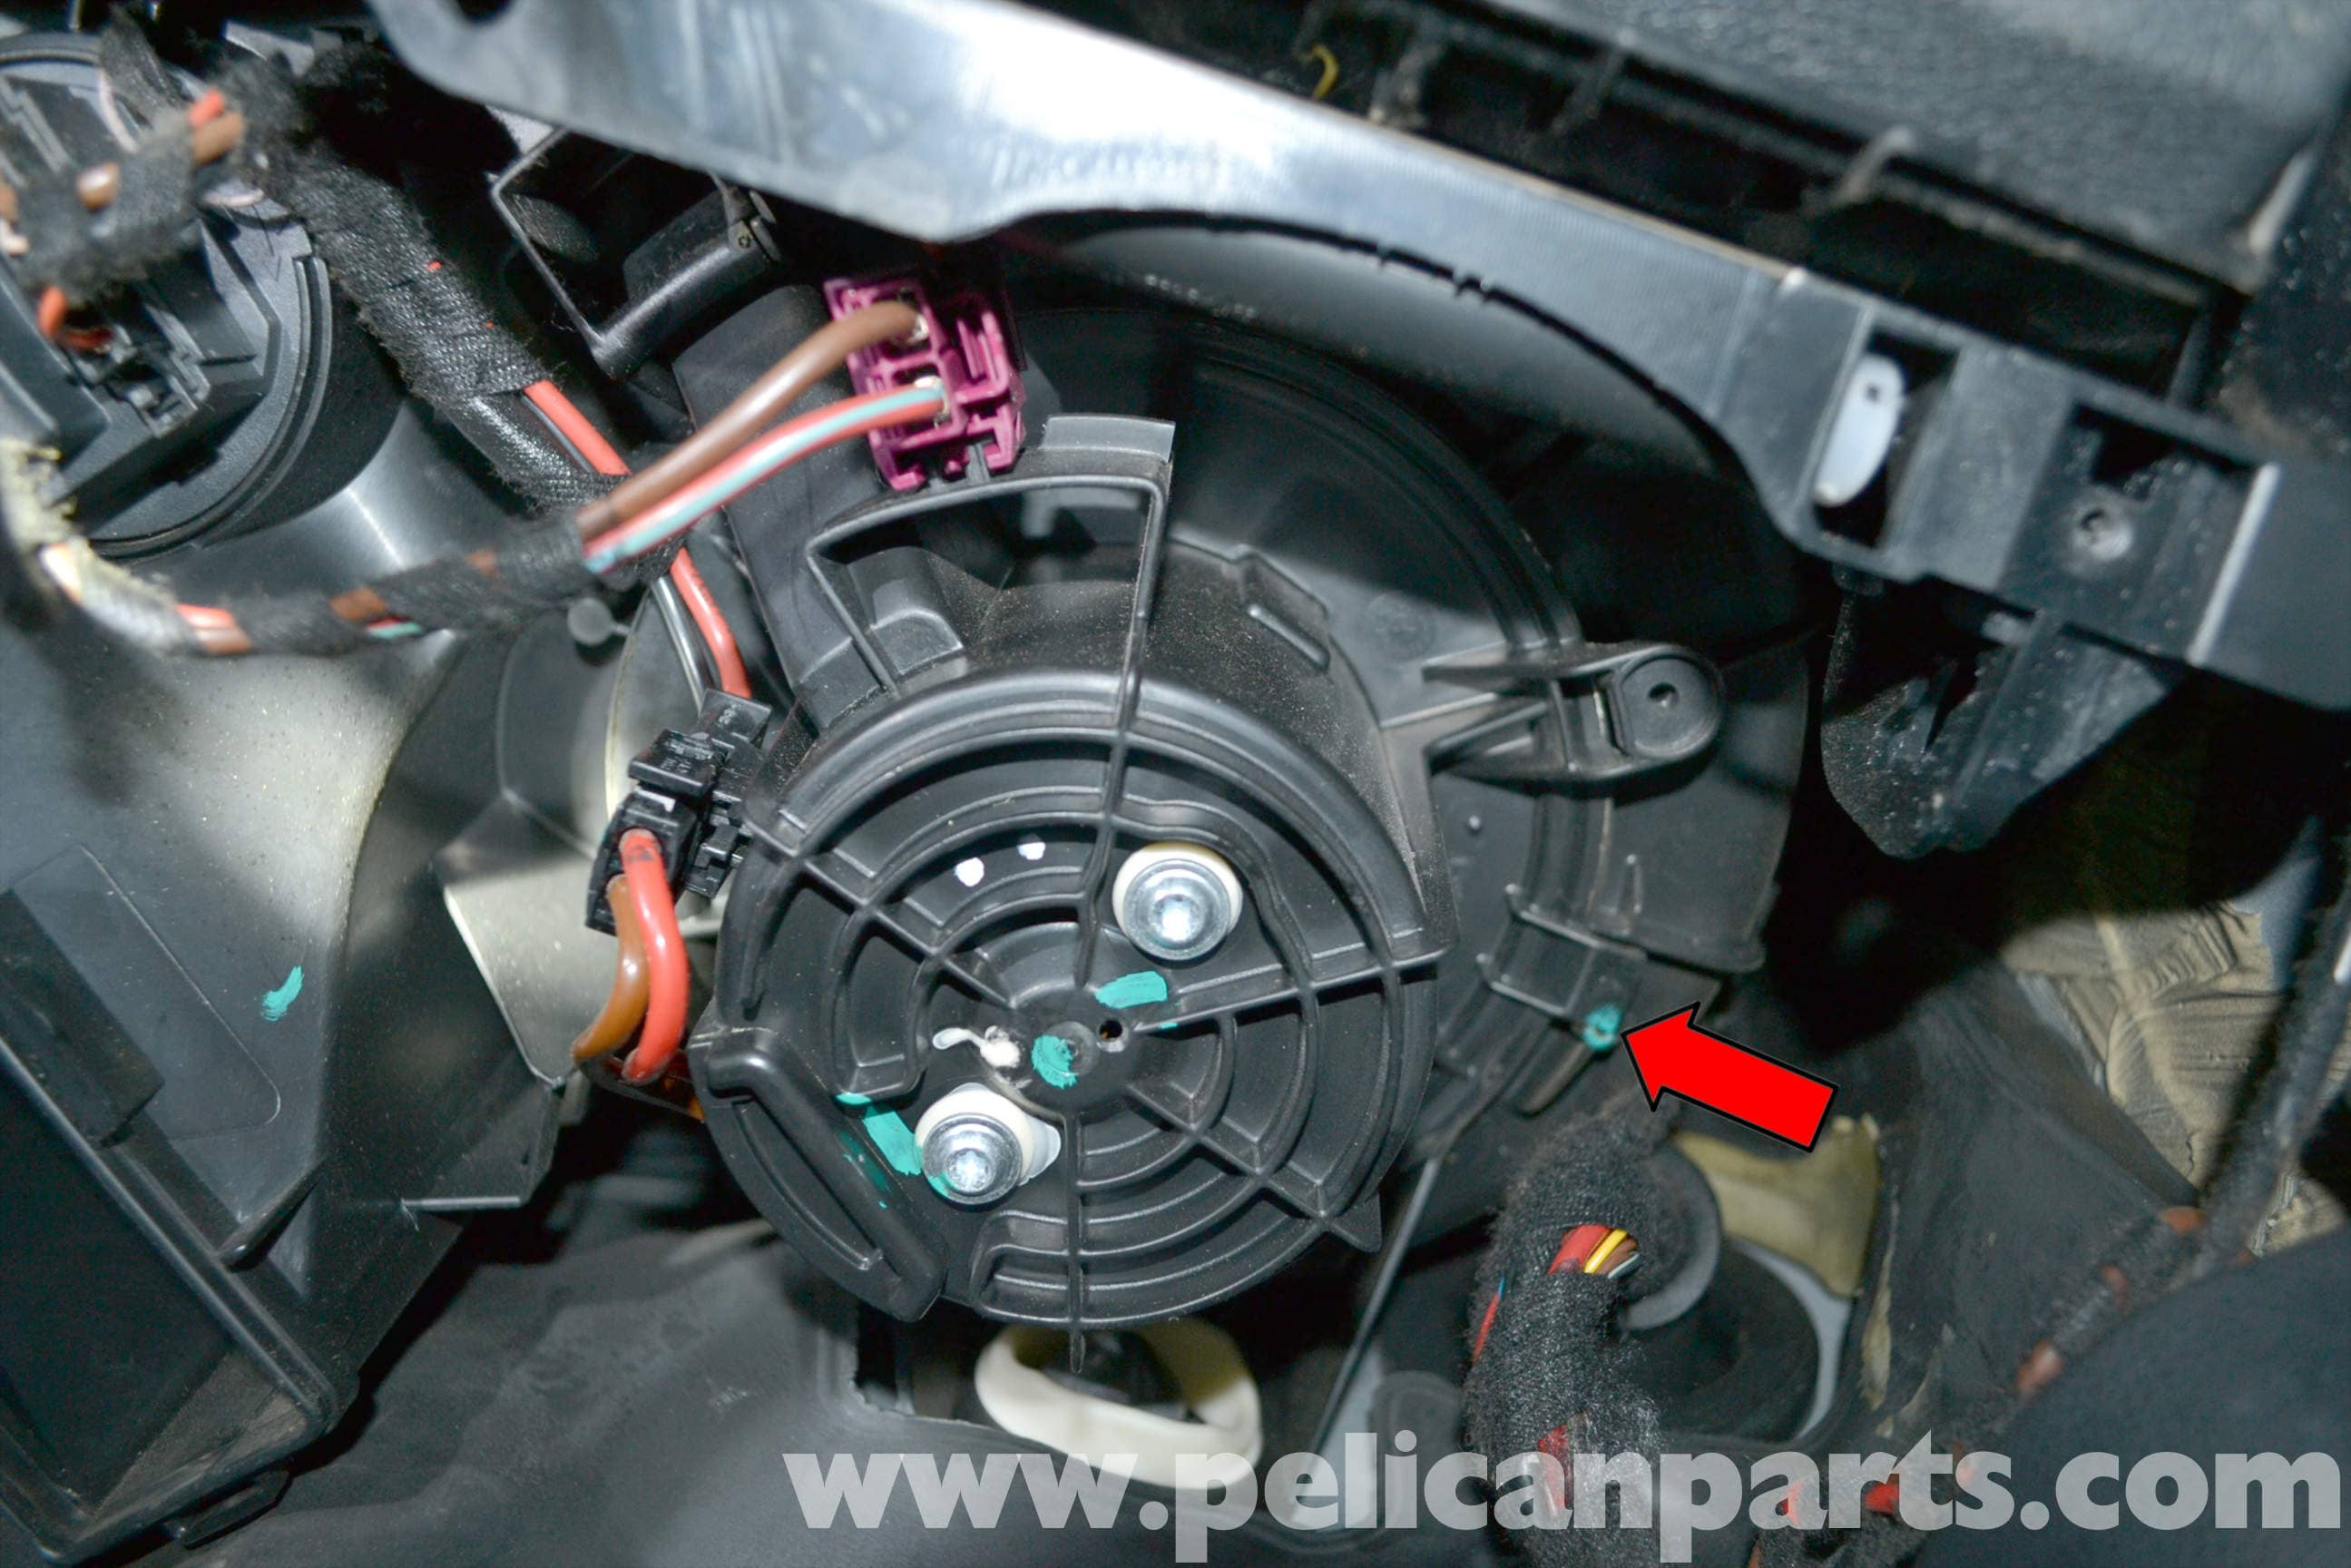 pic06 mercedes benz w204 blower motor replacement (2008 2014) c250 Mercedes C-Class Fuse Box Diagram at webbmarketing.co